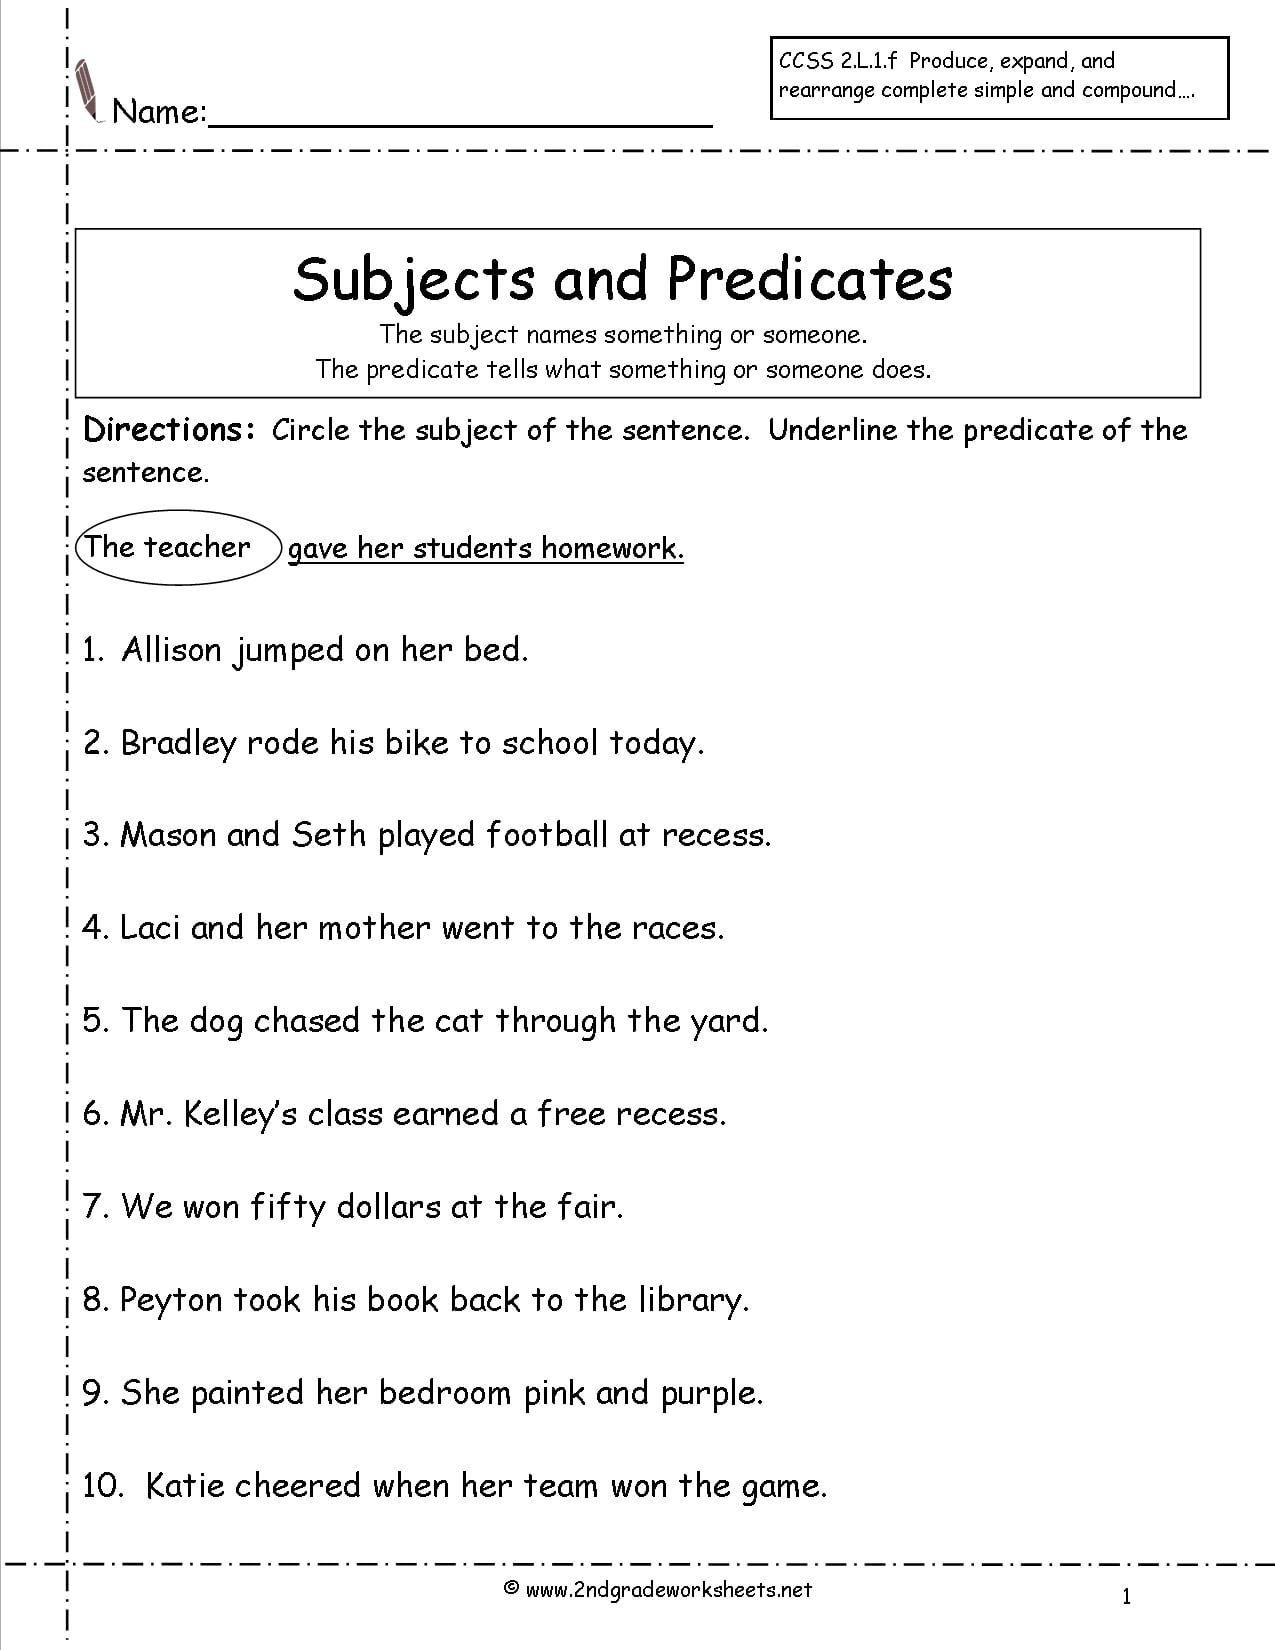 Pin By Kalpana On 3rd Grade English Grammar Worksheets On